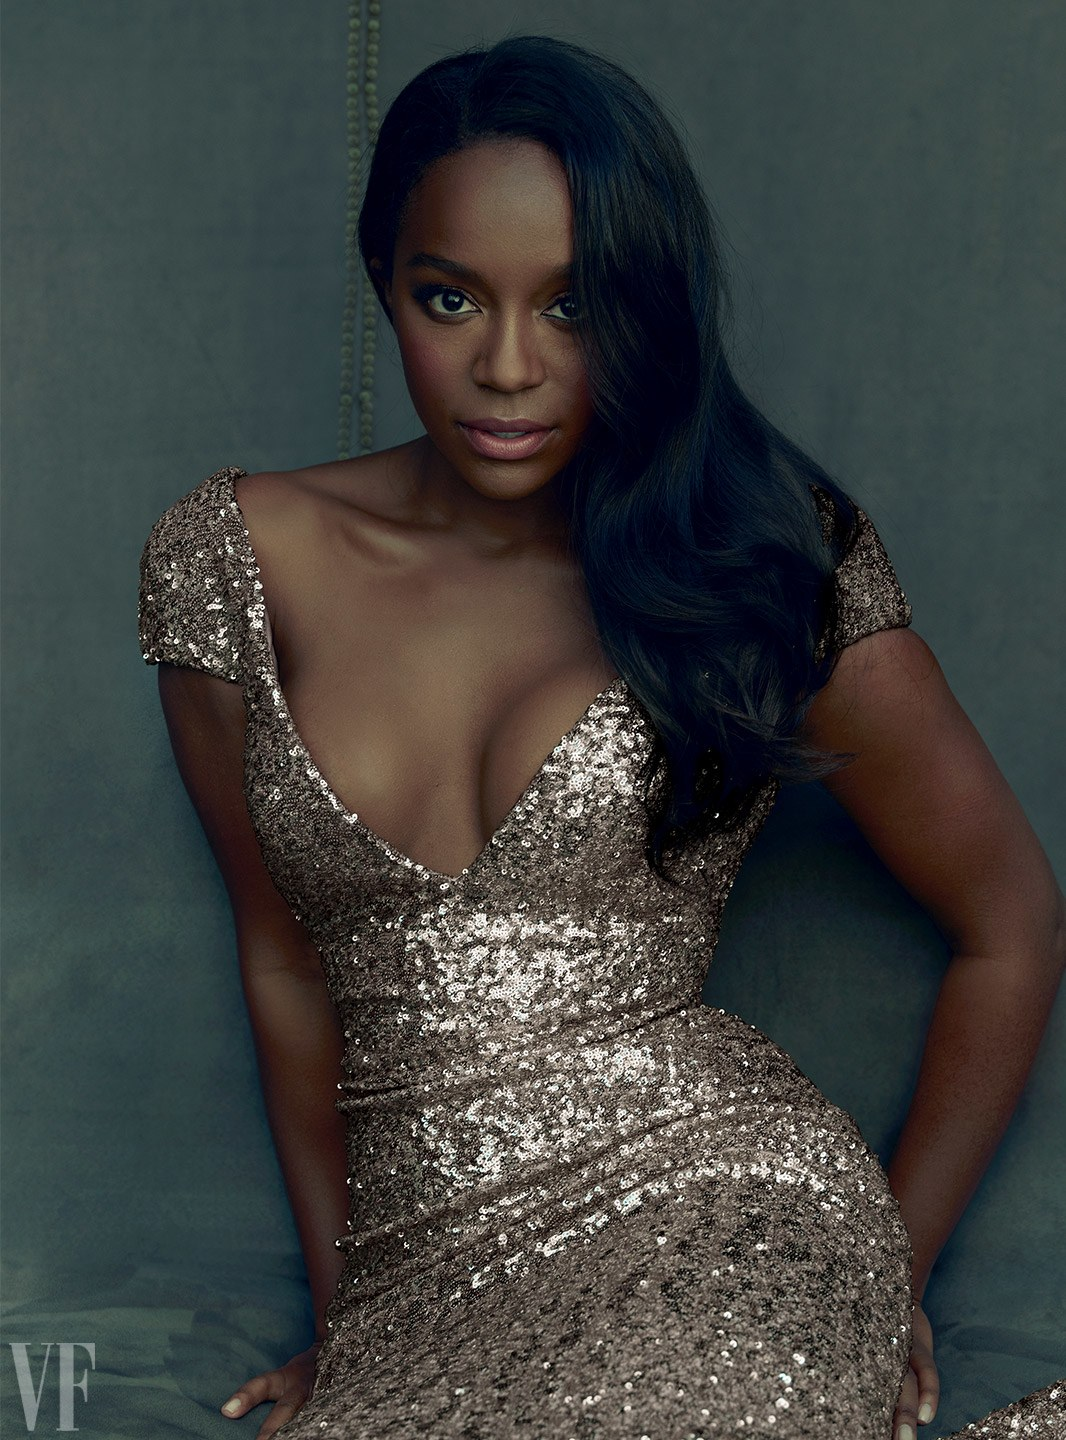 Vanity Fair Feature Video: Who does Aja Naomi King respect the most?